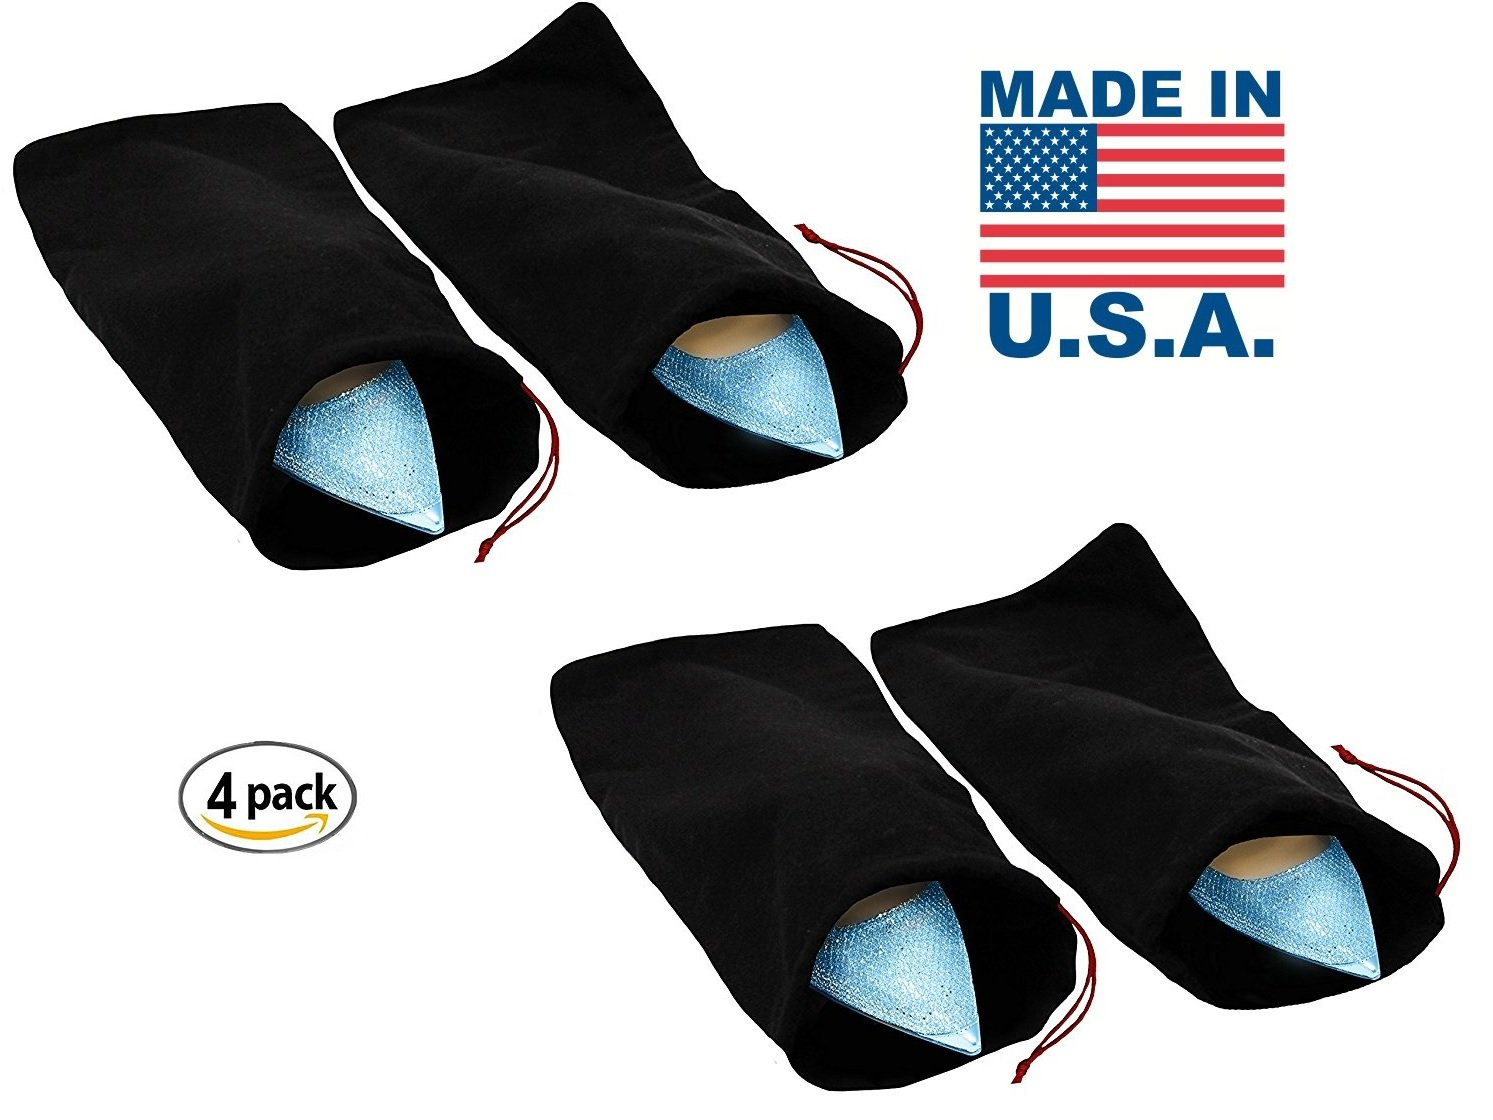 Earthwise Shoe Storage Bags 100% Cotton with Drawstring For Men and Women Perfect for Travel MADE IN THE USA 17'' X 8'' Machine Washable Black (Set of 4)